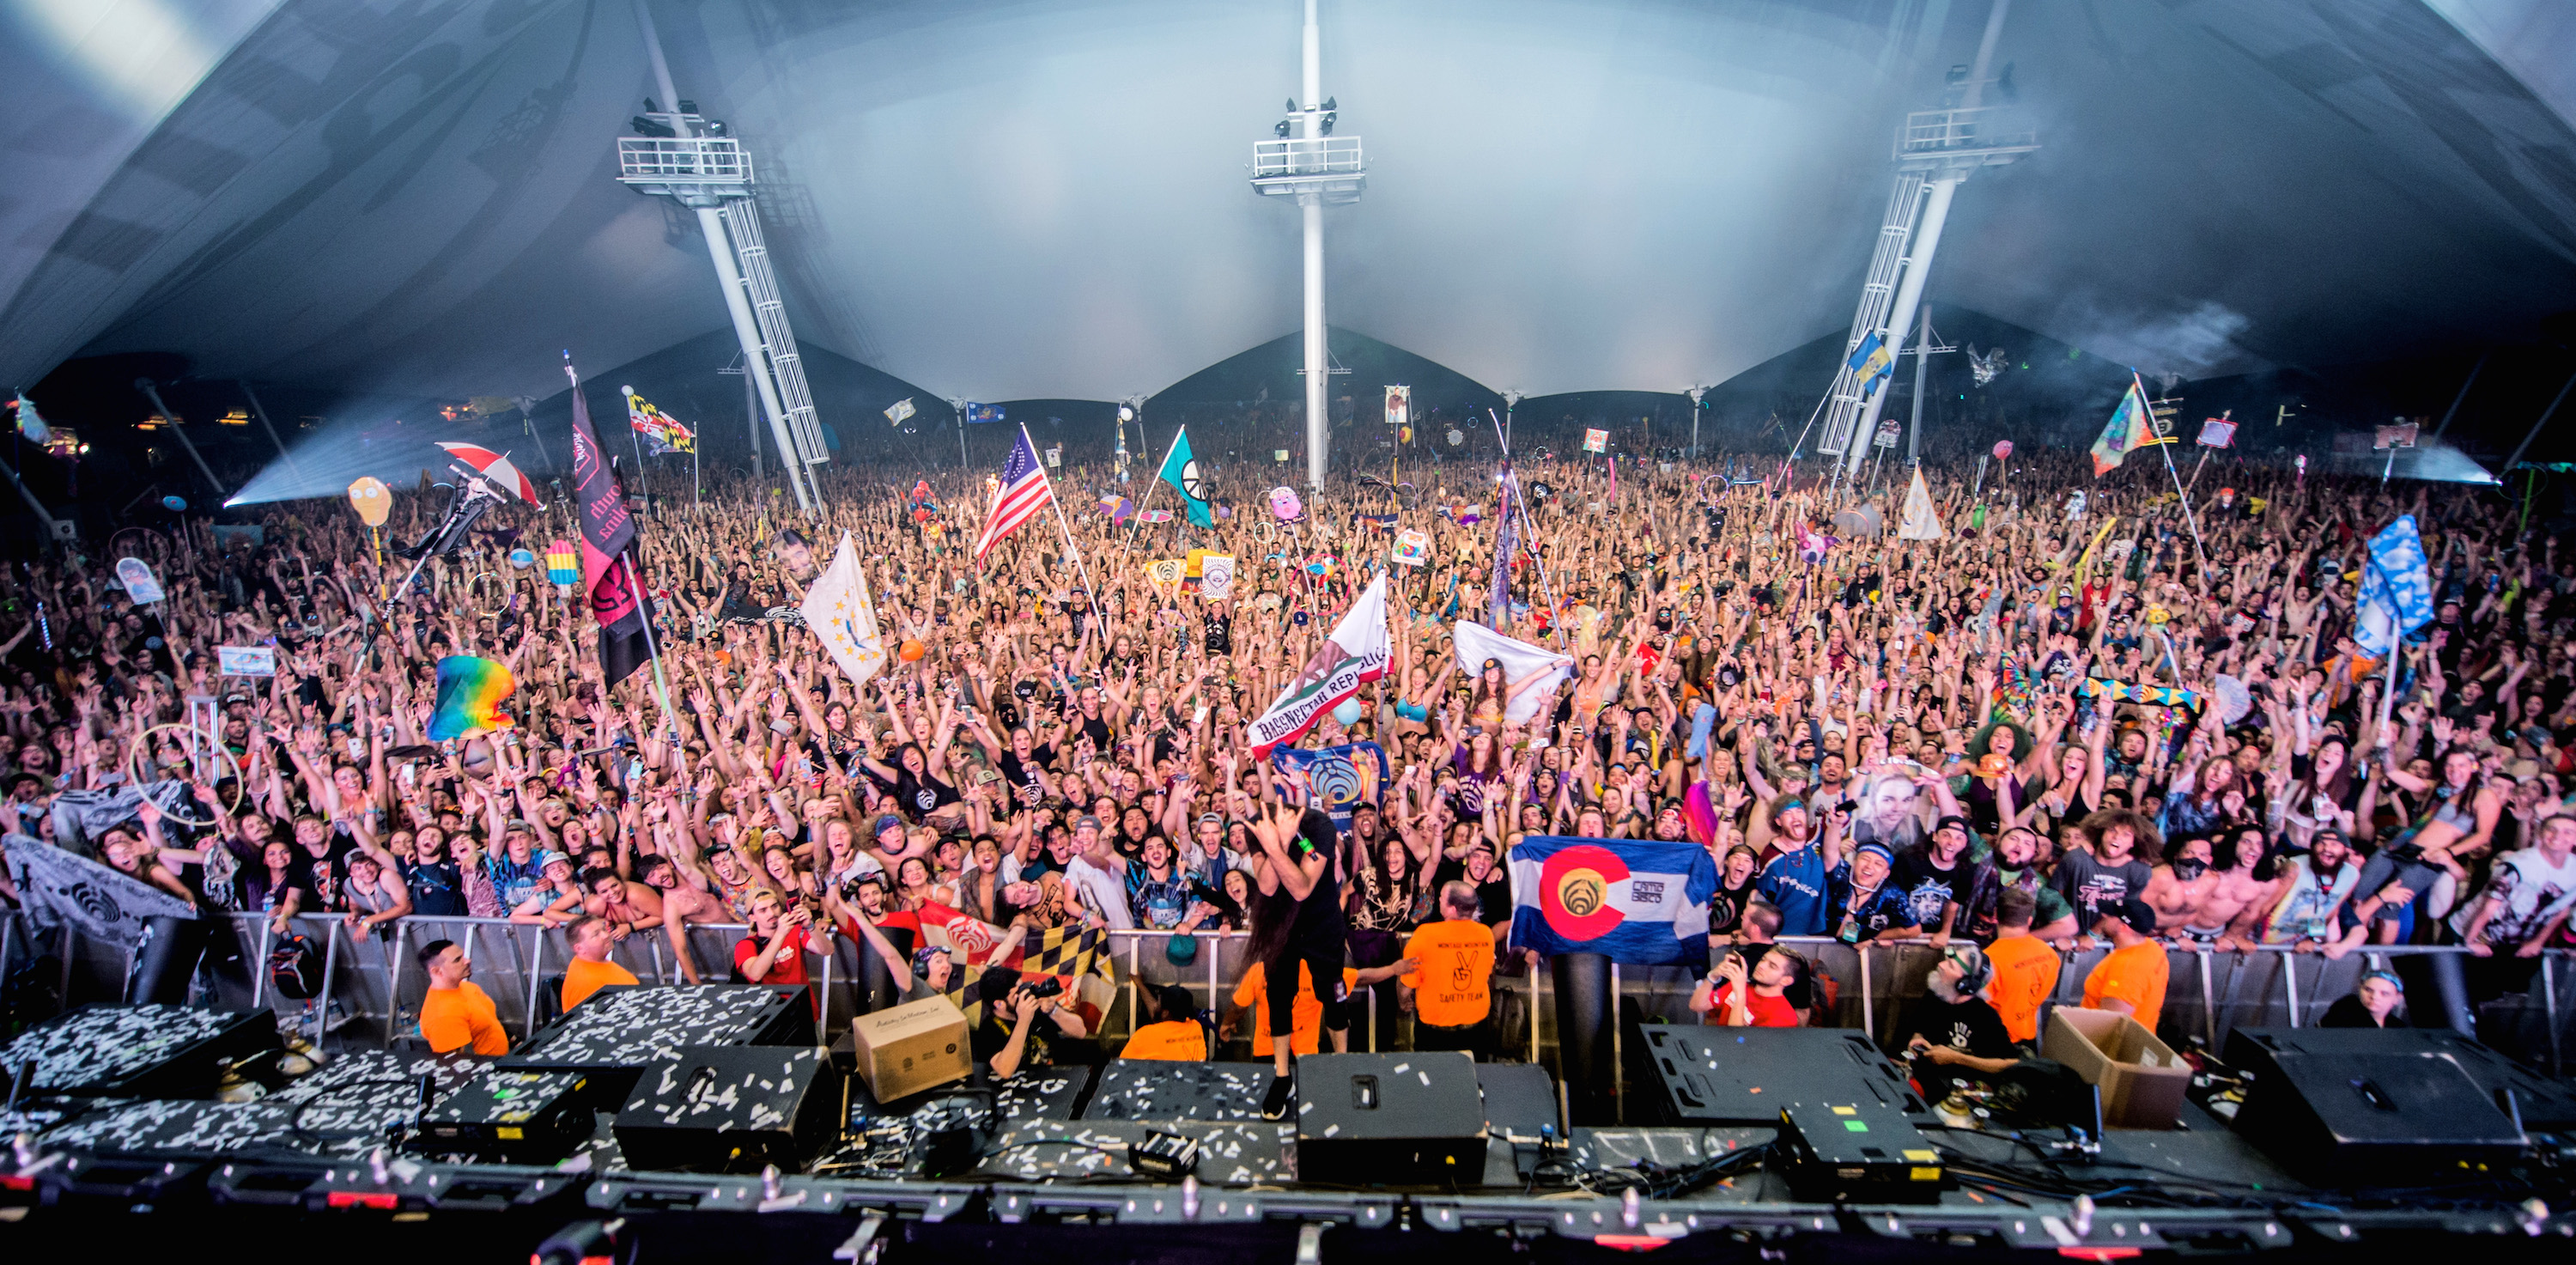 CAMP BISCO 2017 FAMILY PHOTO